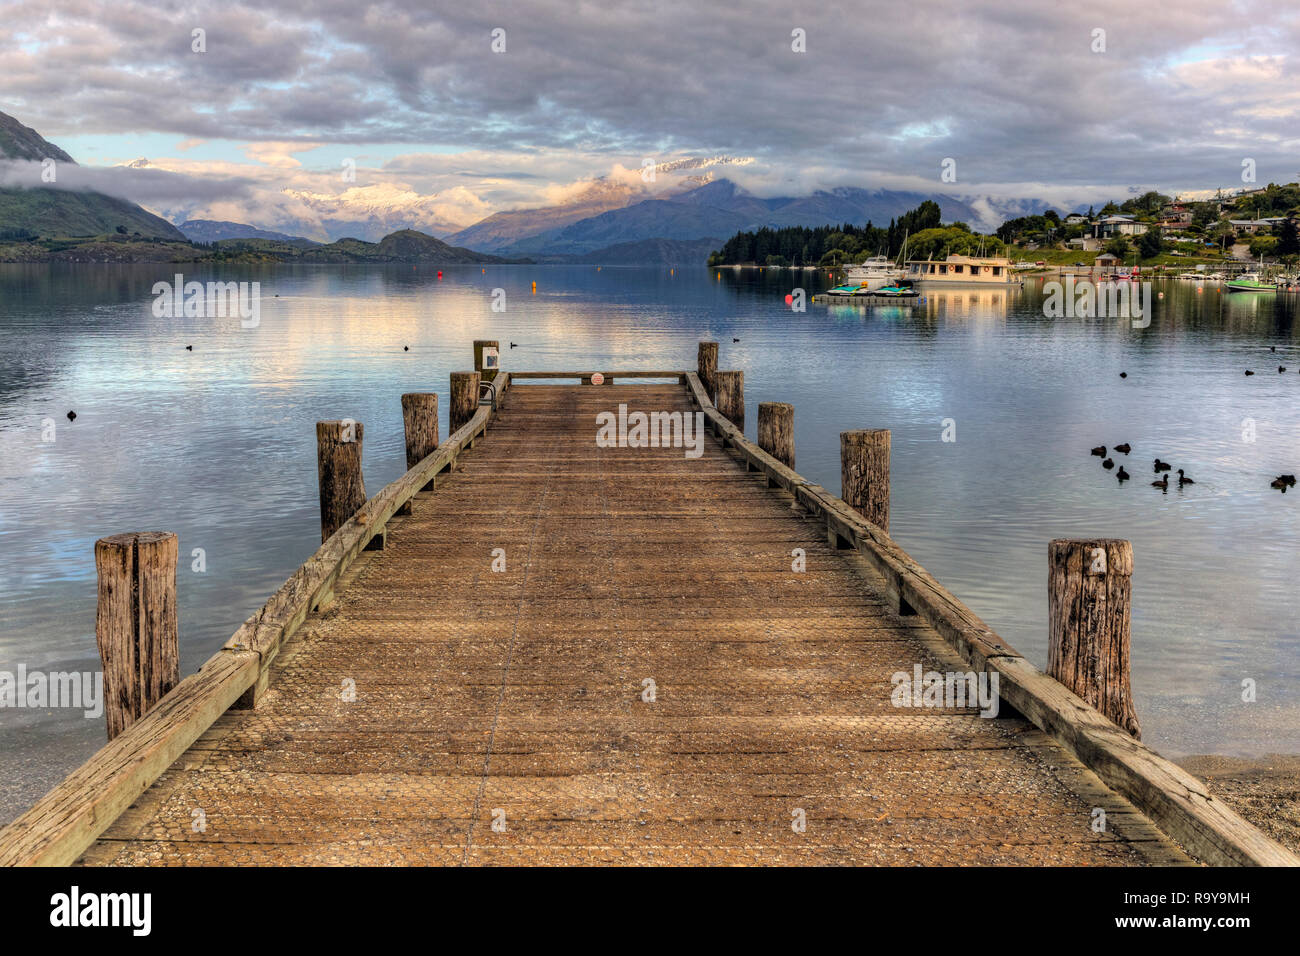 Wanaka, Otago, Queenstown Lakes District, South Island, New Zealand Stock Photo